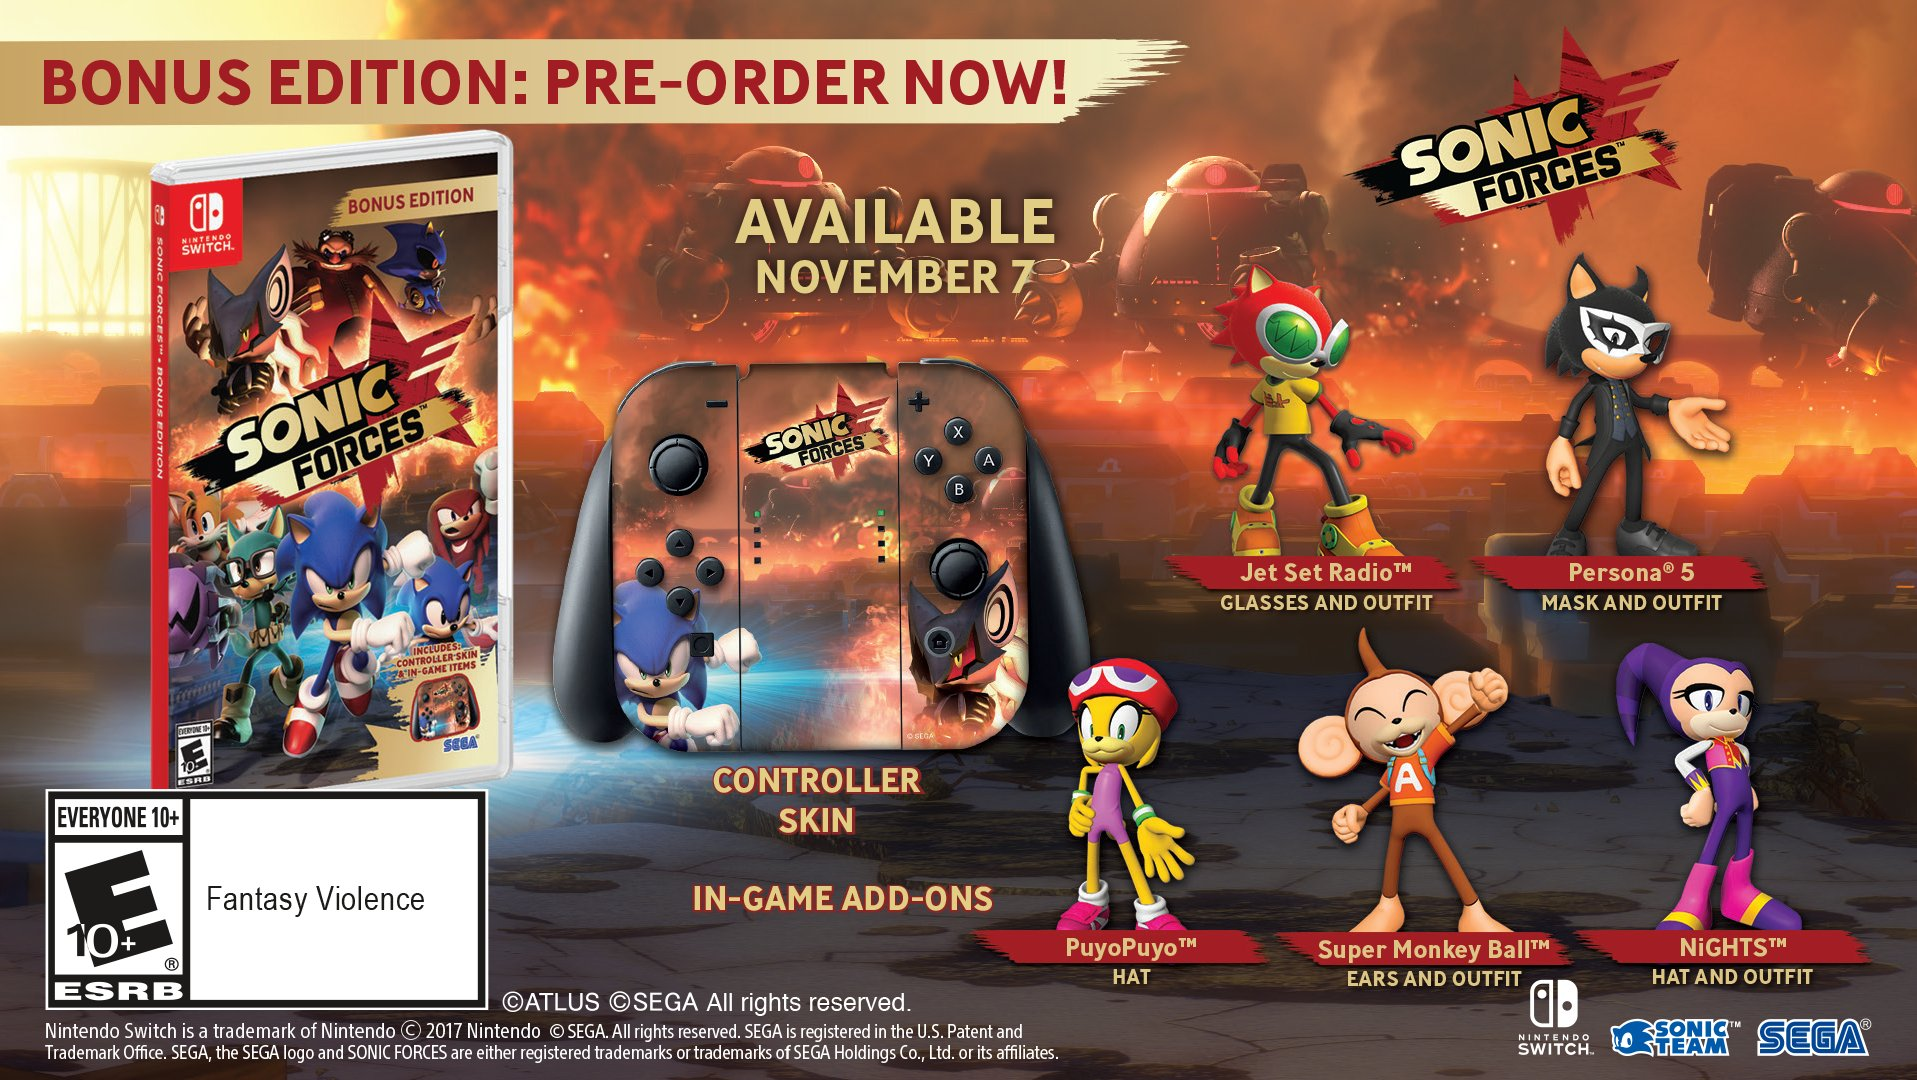 Sonic Forces to launch on November 7th, Bonus Edition with DLC and